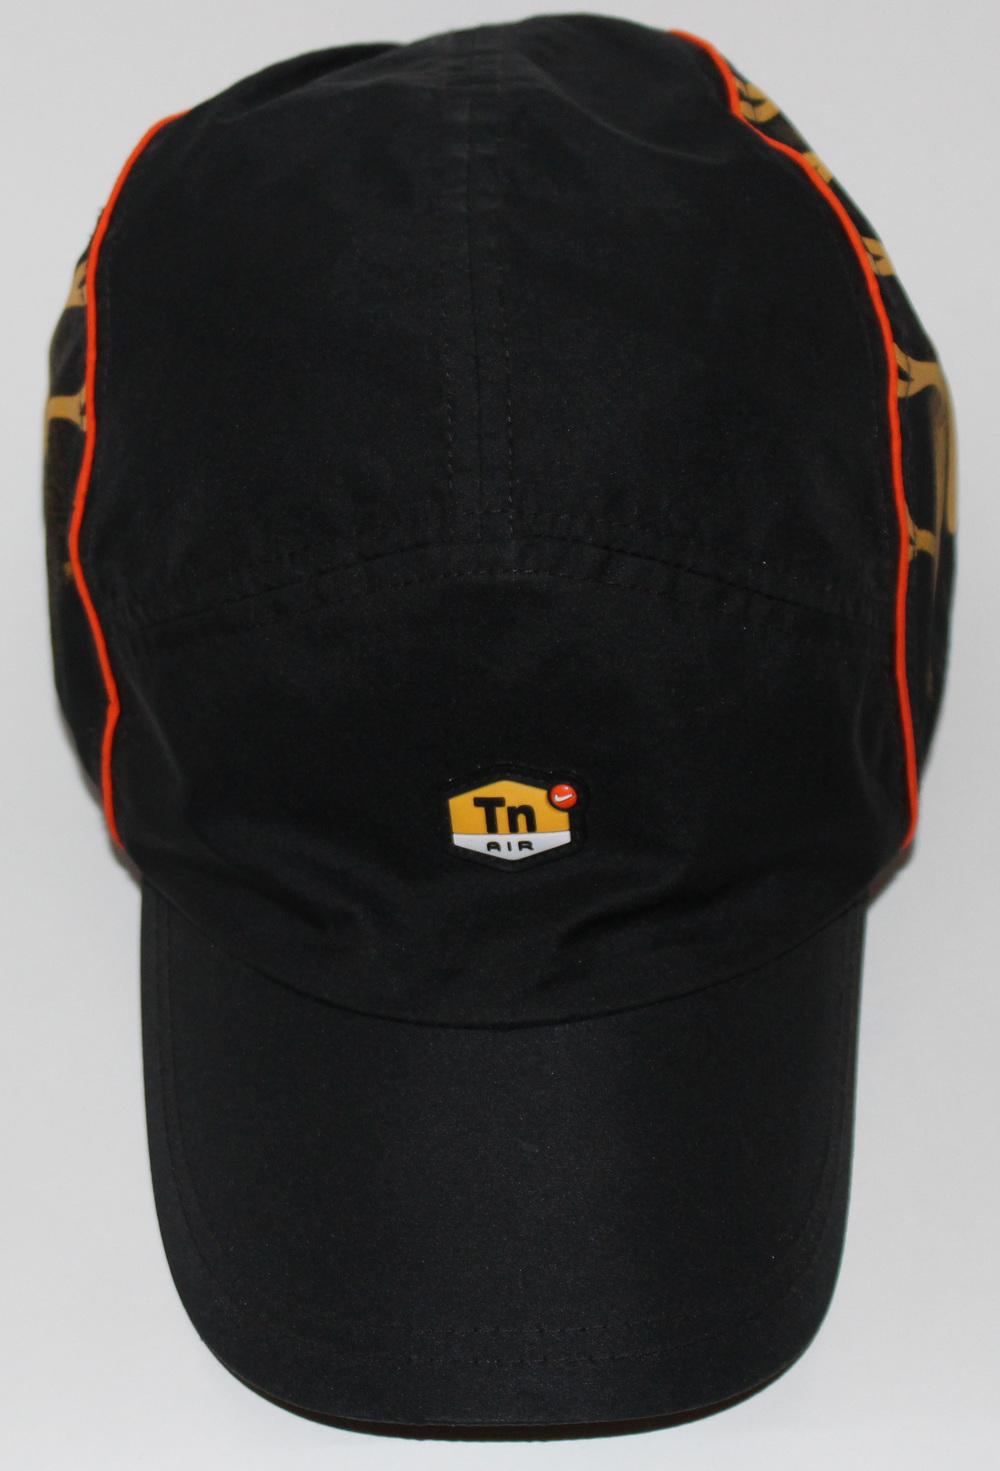 ad9f892bc1b ... coupon code for nike tn tuned air max plus 5 panel hat black orange  ec0f7 8d6d7